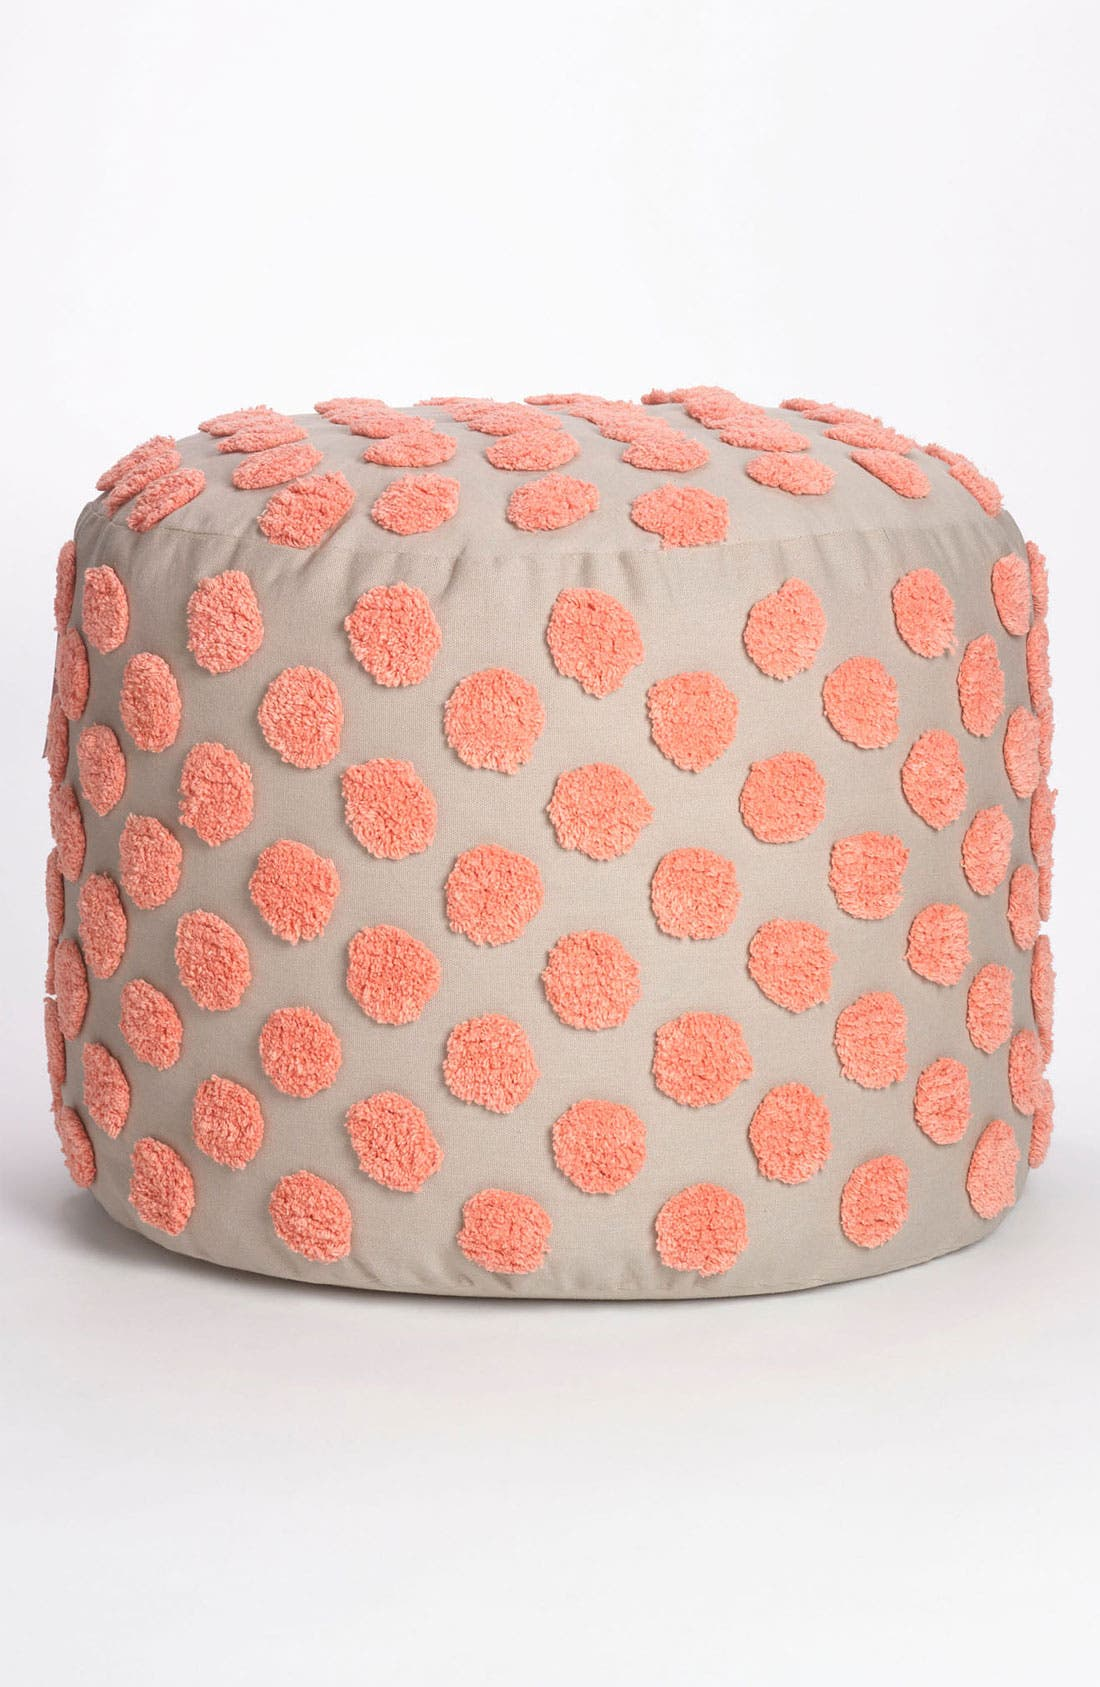 Alternate Image 1 Selected - Nordstrom at Home 'Tufted Spots' Pouf